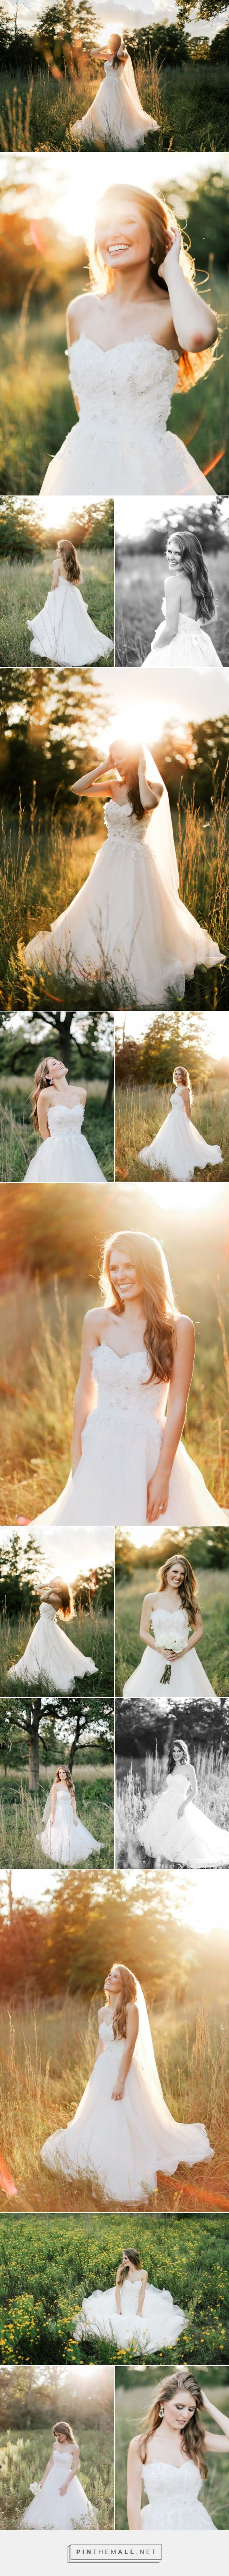 Haley - Gold hour bridal shoot | Feather and Twine Photography, Austin TX